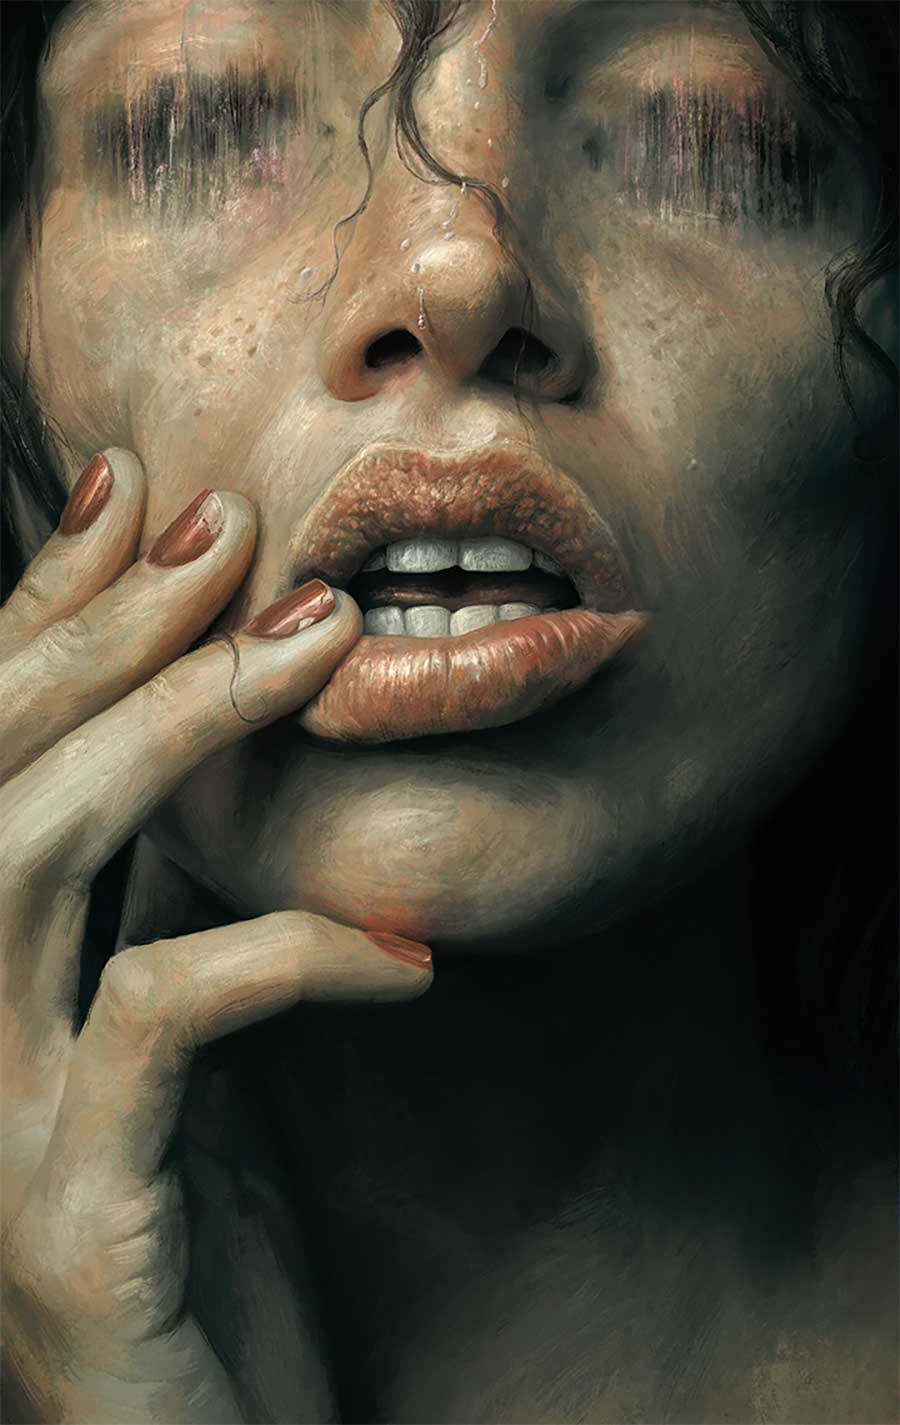 Digital Paintings von Sam Spratt Sam-Spratt-digital-paintings_06